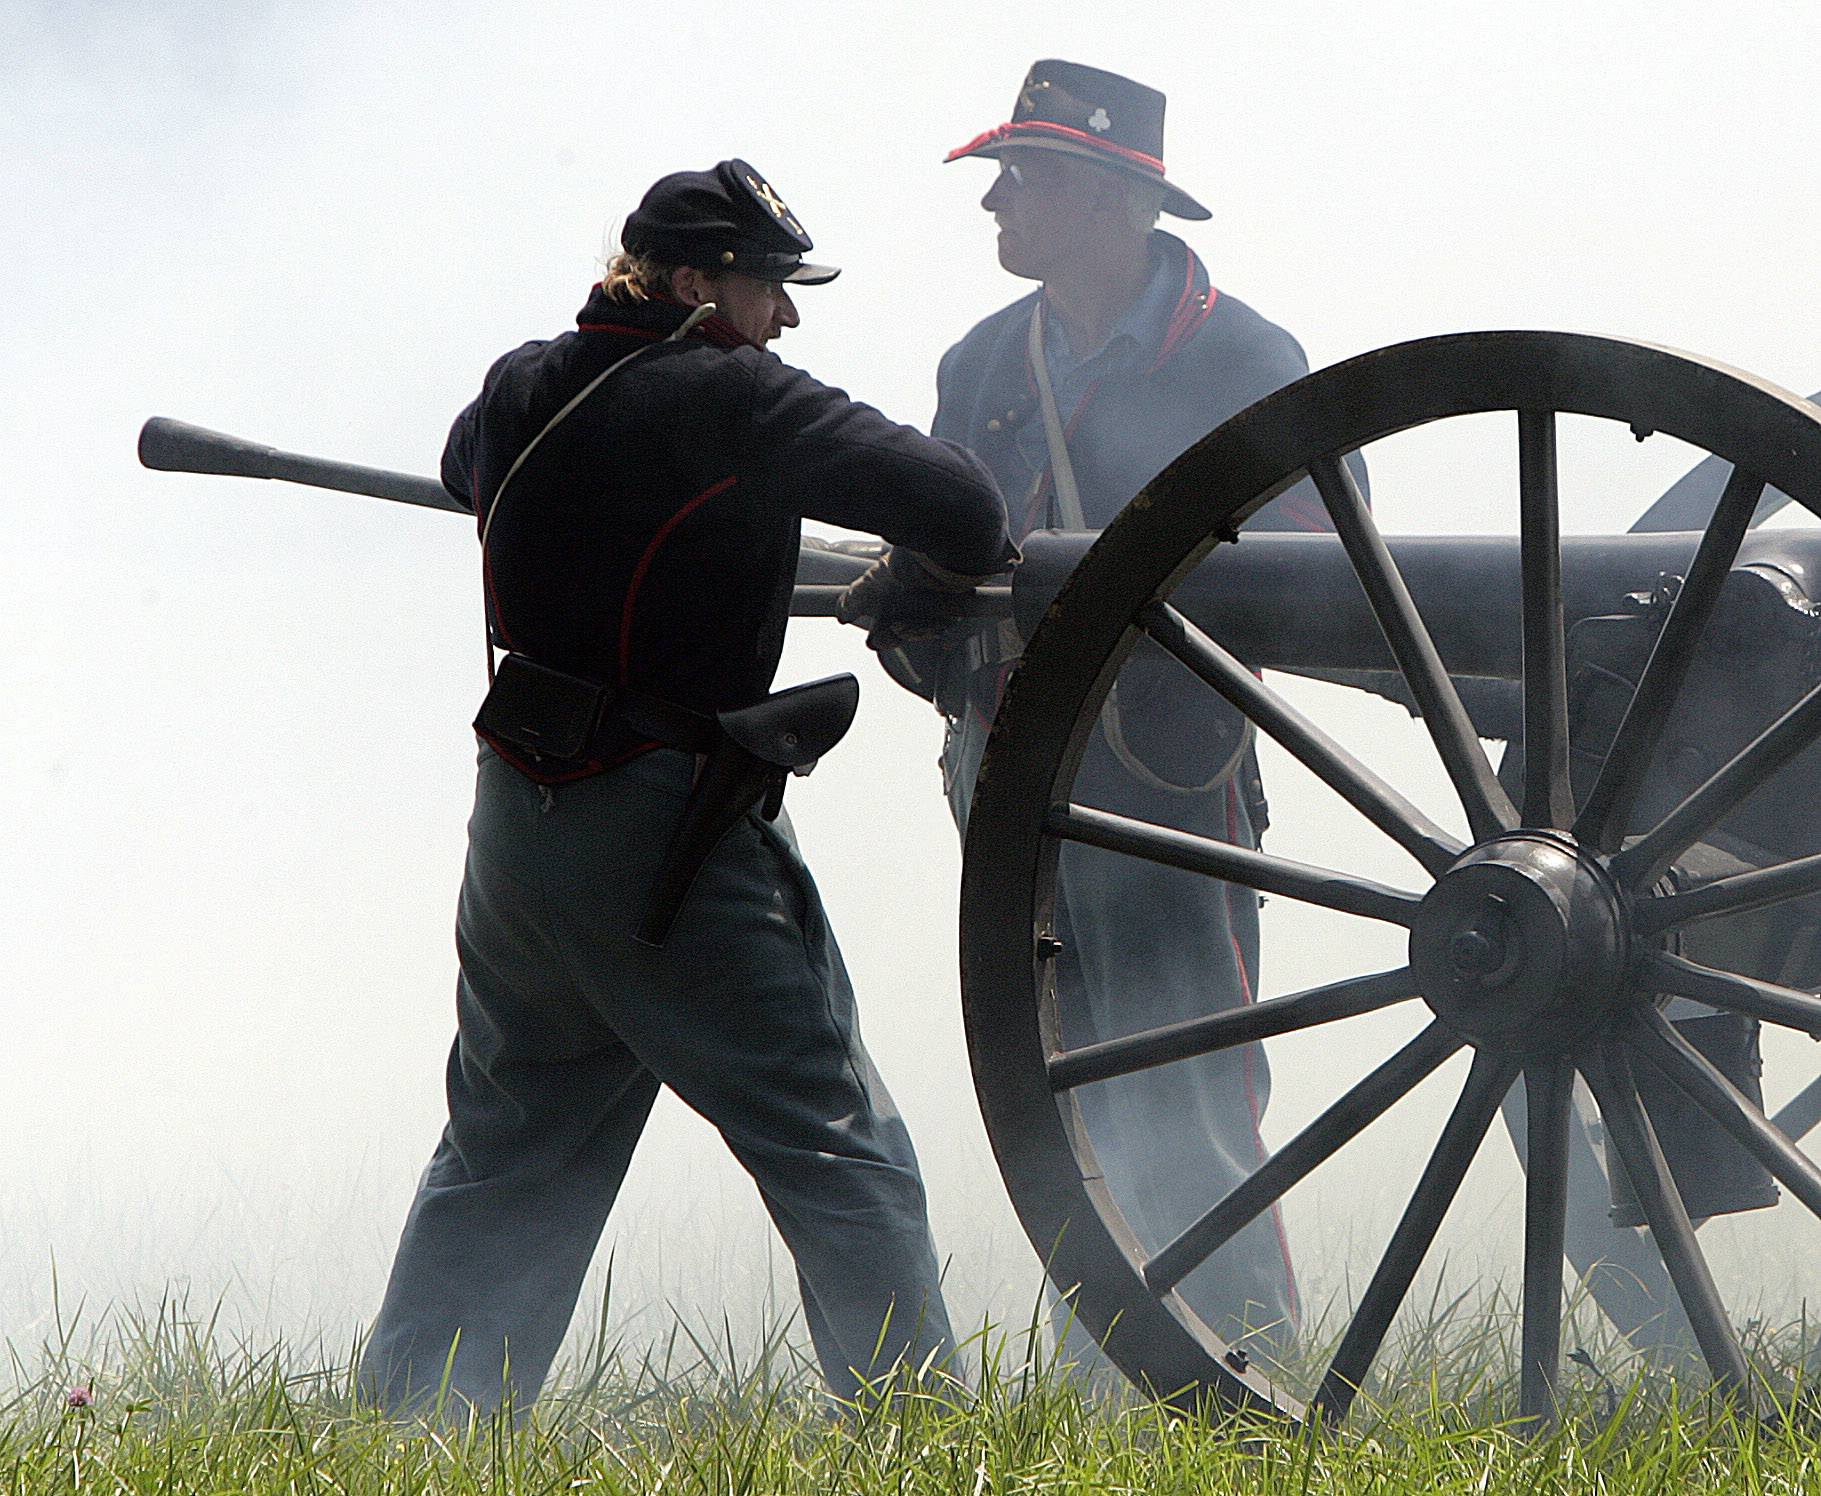 Civil War Days returns this weekend to Naper Settlement with mock battles on both Saturday and Sunday.